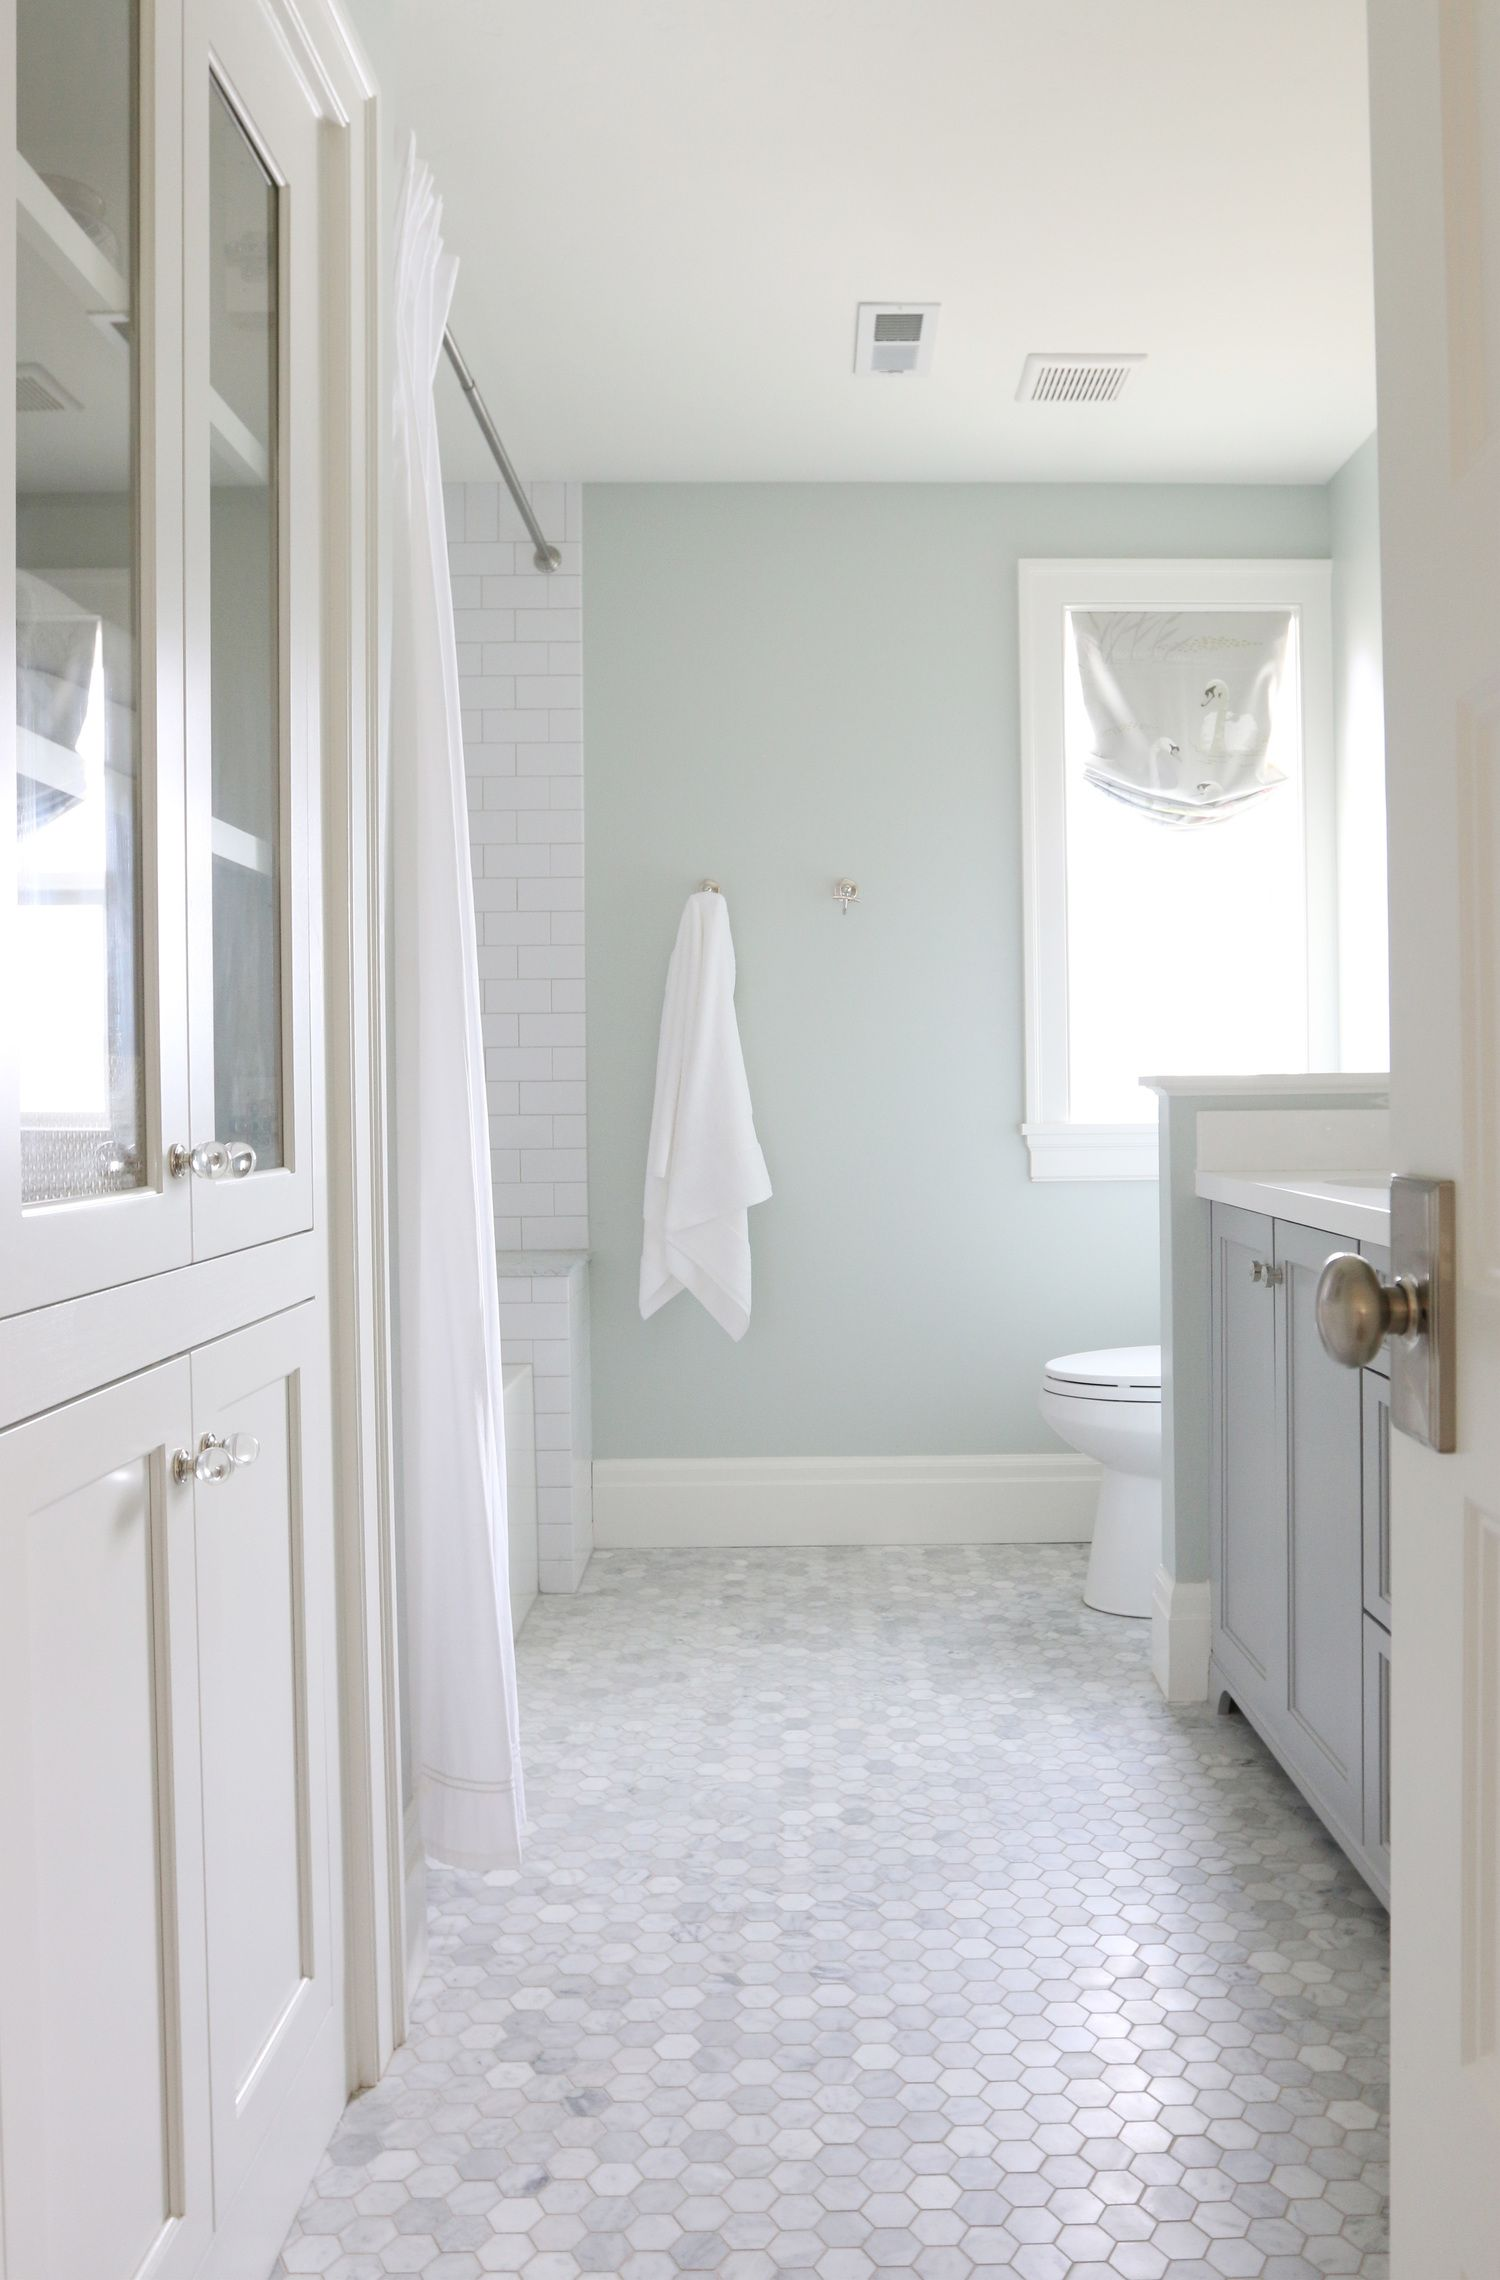 The Midway House: Guest Bathroom | Sherwin williams sea salt, Studio on gray chicken, gray pumpkin, gray apples, pj salt,